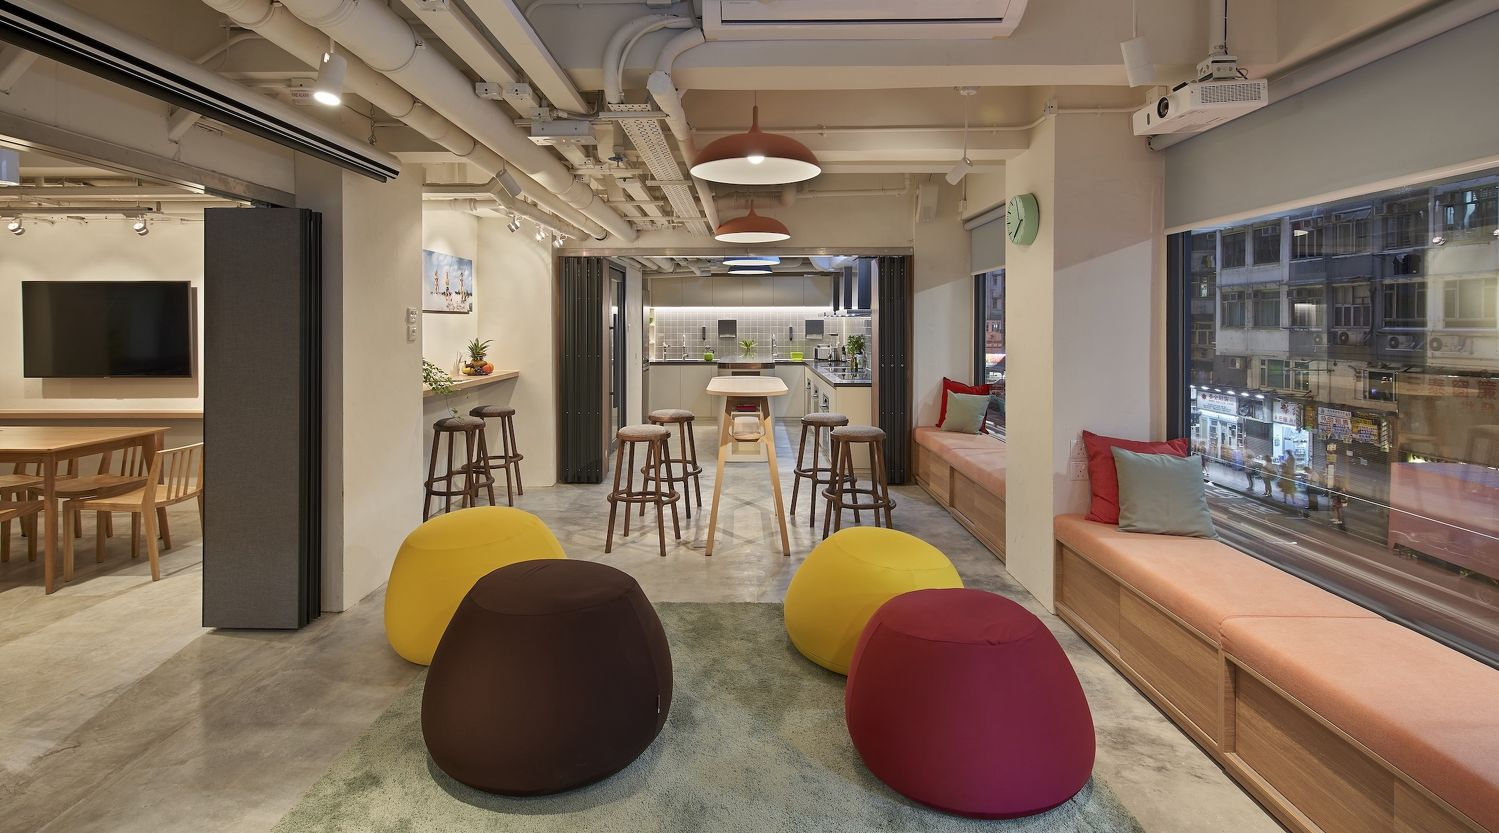 EDGEPROP SINGAPORE - The shared kitchen and dining area at Weave on Boundary, which opened two years ago (Photo: Weave Co-Living) - EDGEPROP SINGAPORE